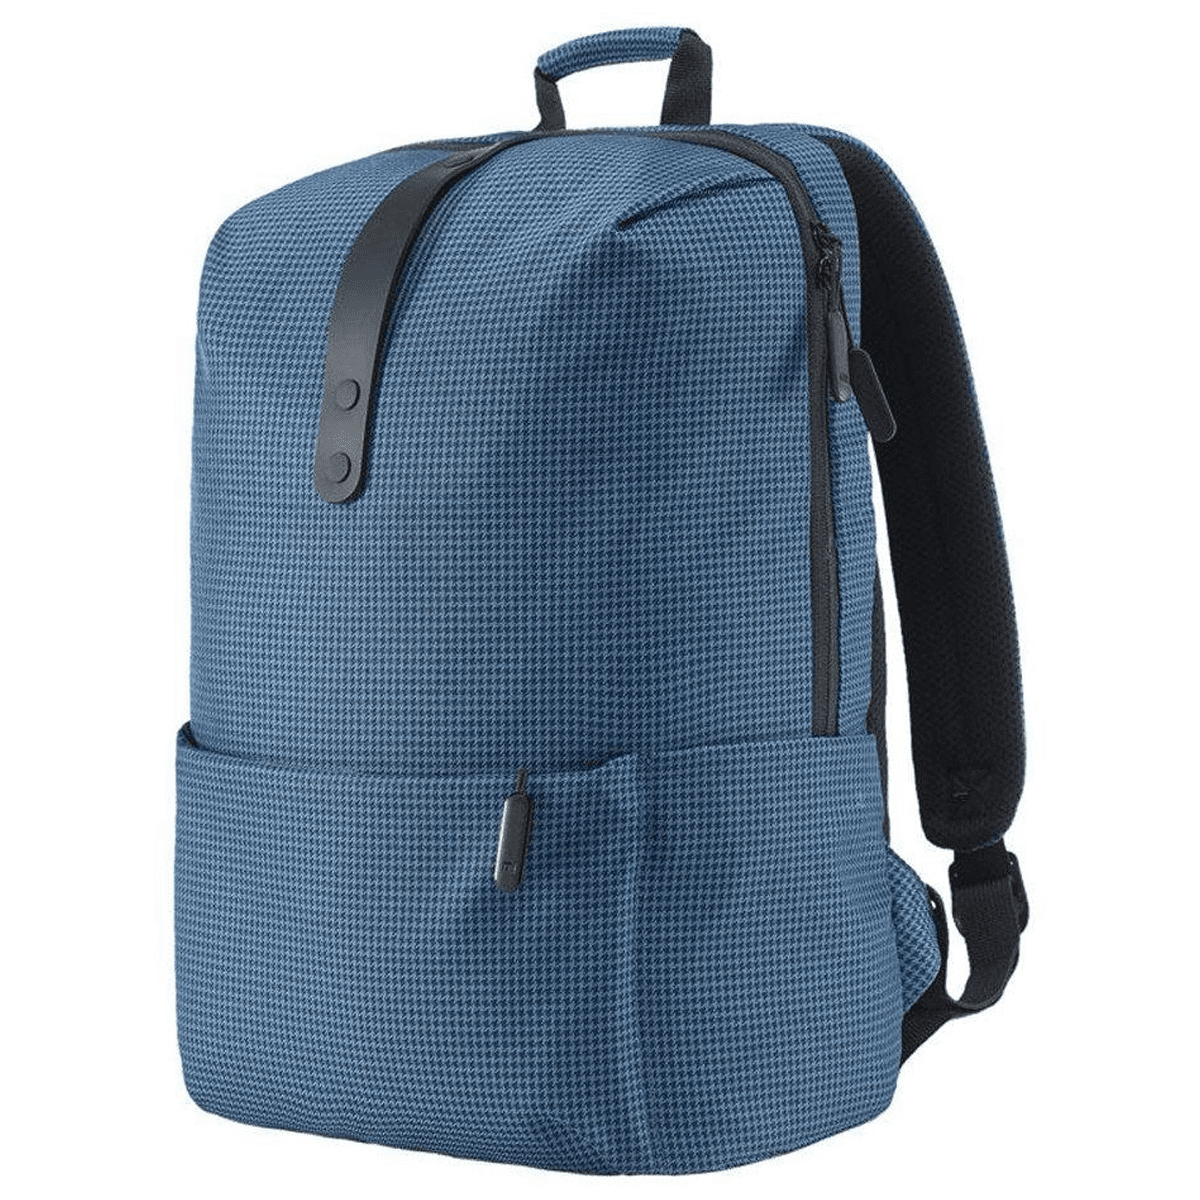 Original XiaomI Mi Backpack College Casual Shoulders Bag